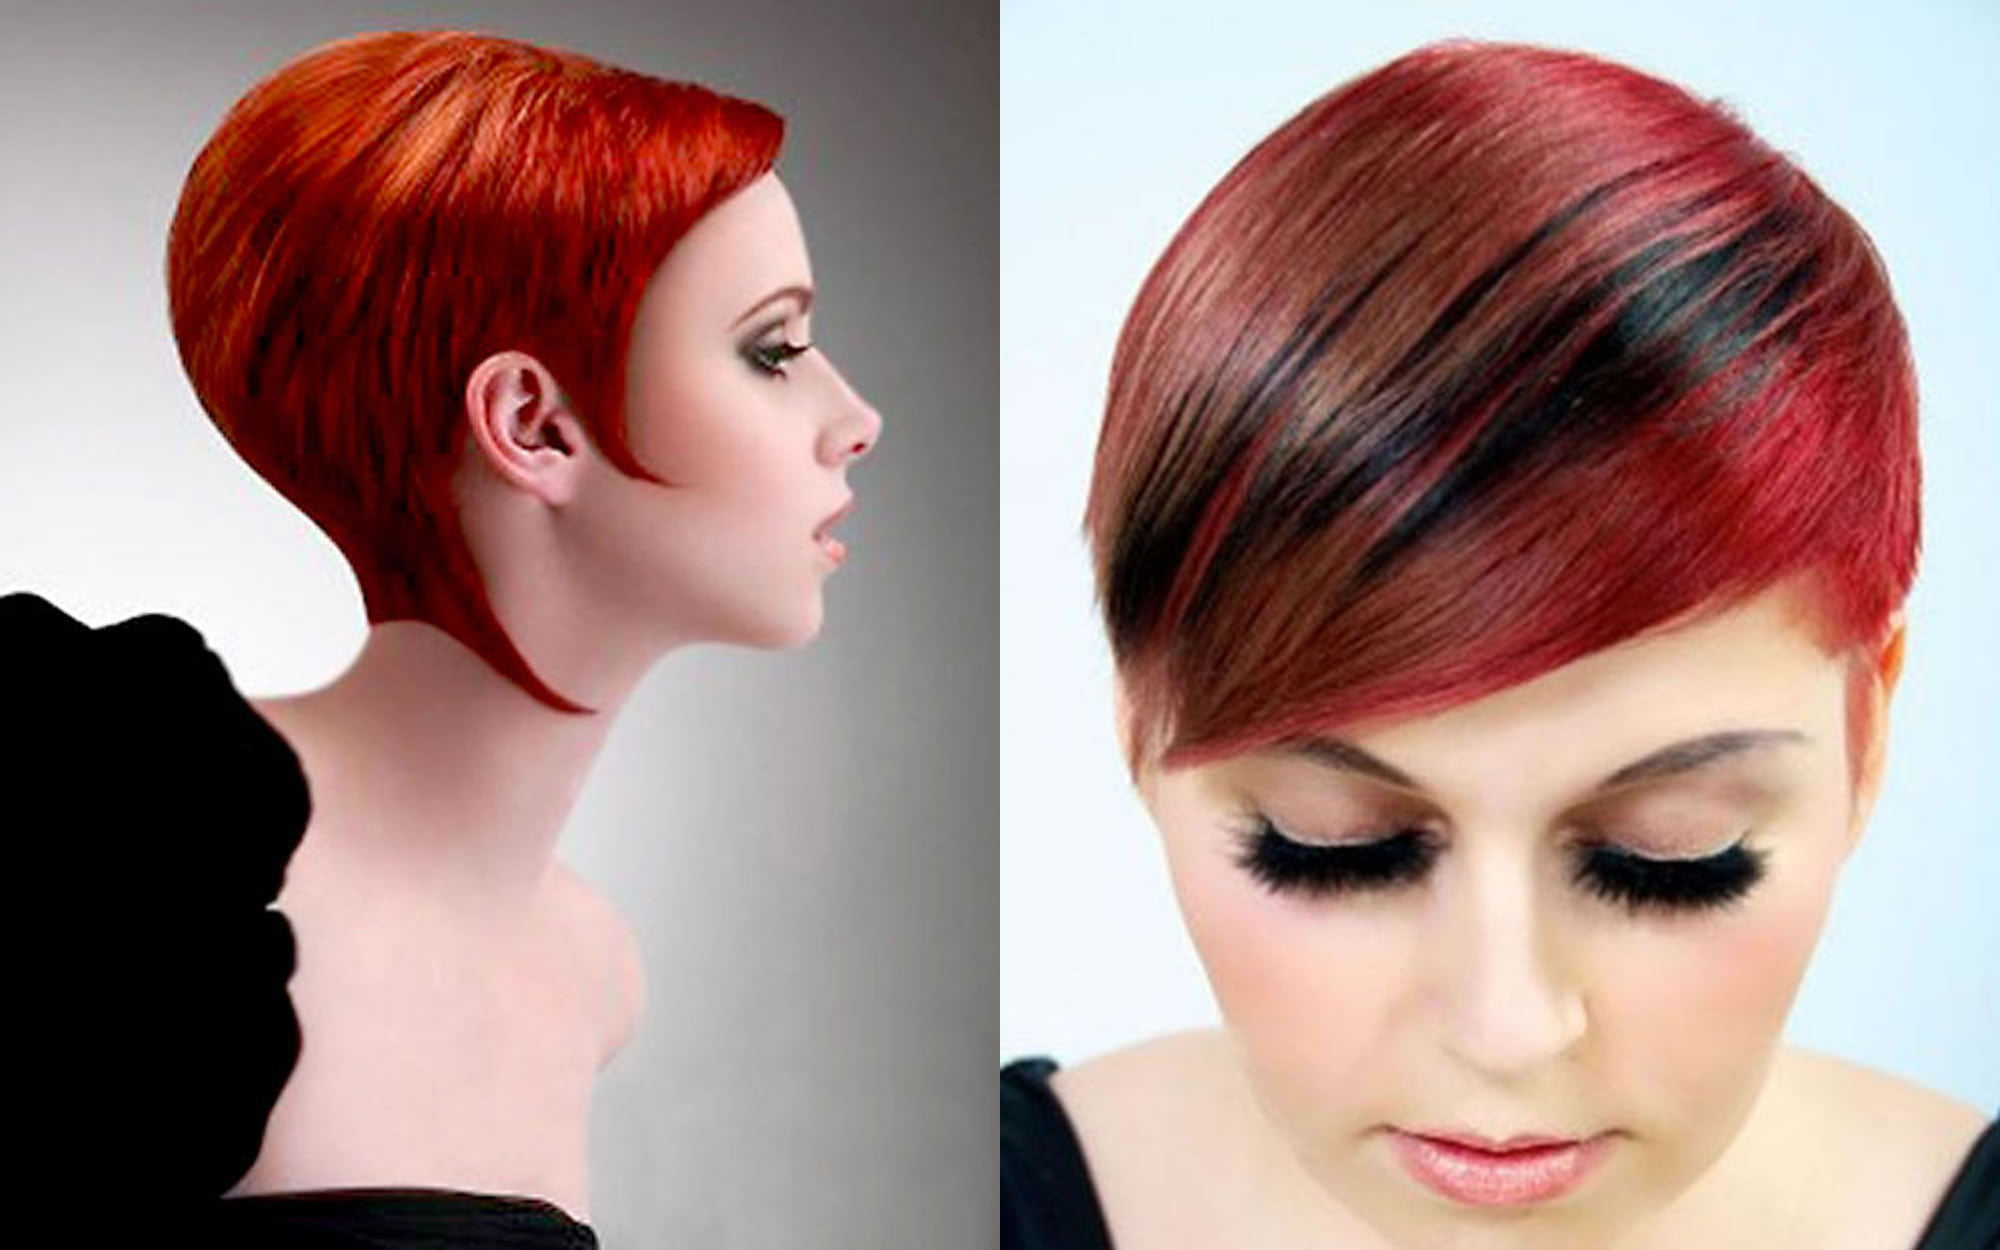 Short Hair 2018 Hair Color Ideas For Short Hair 2019 Page 3 Of 6